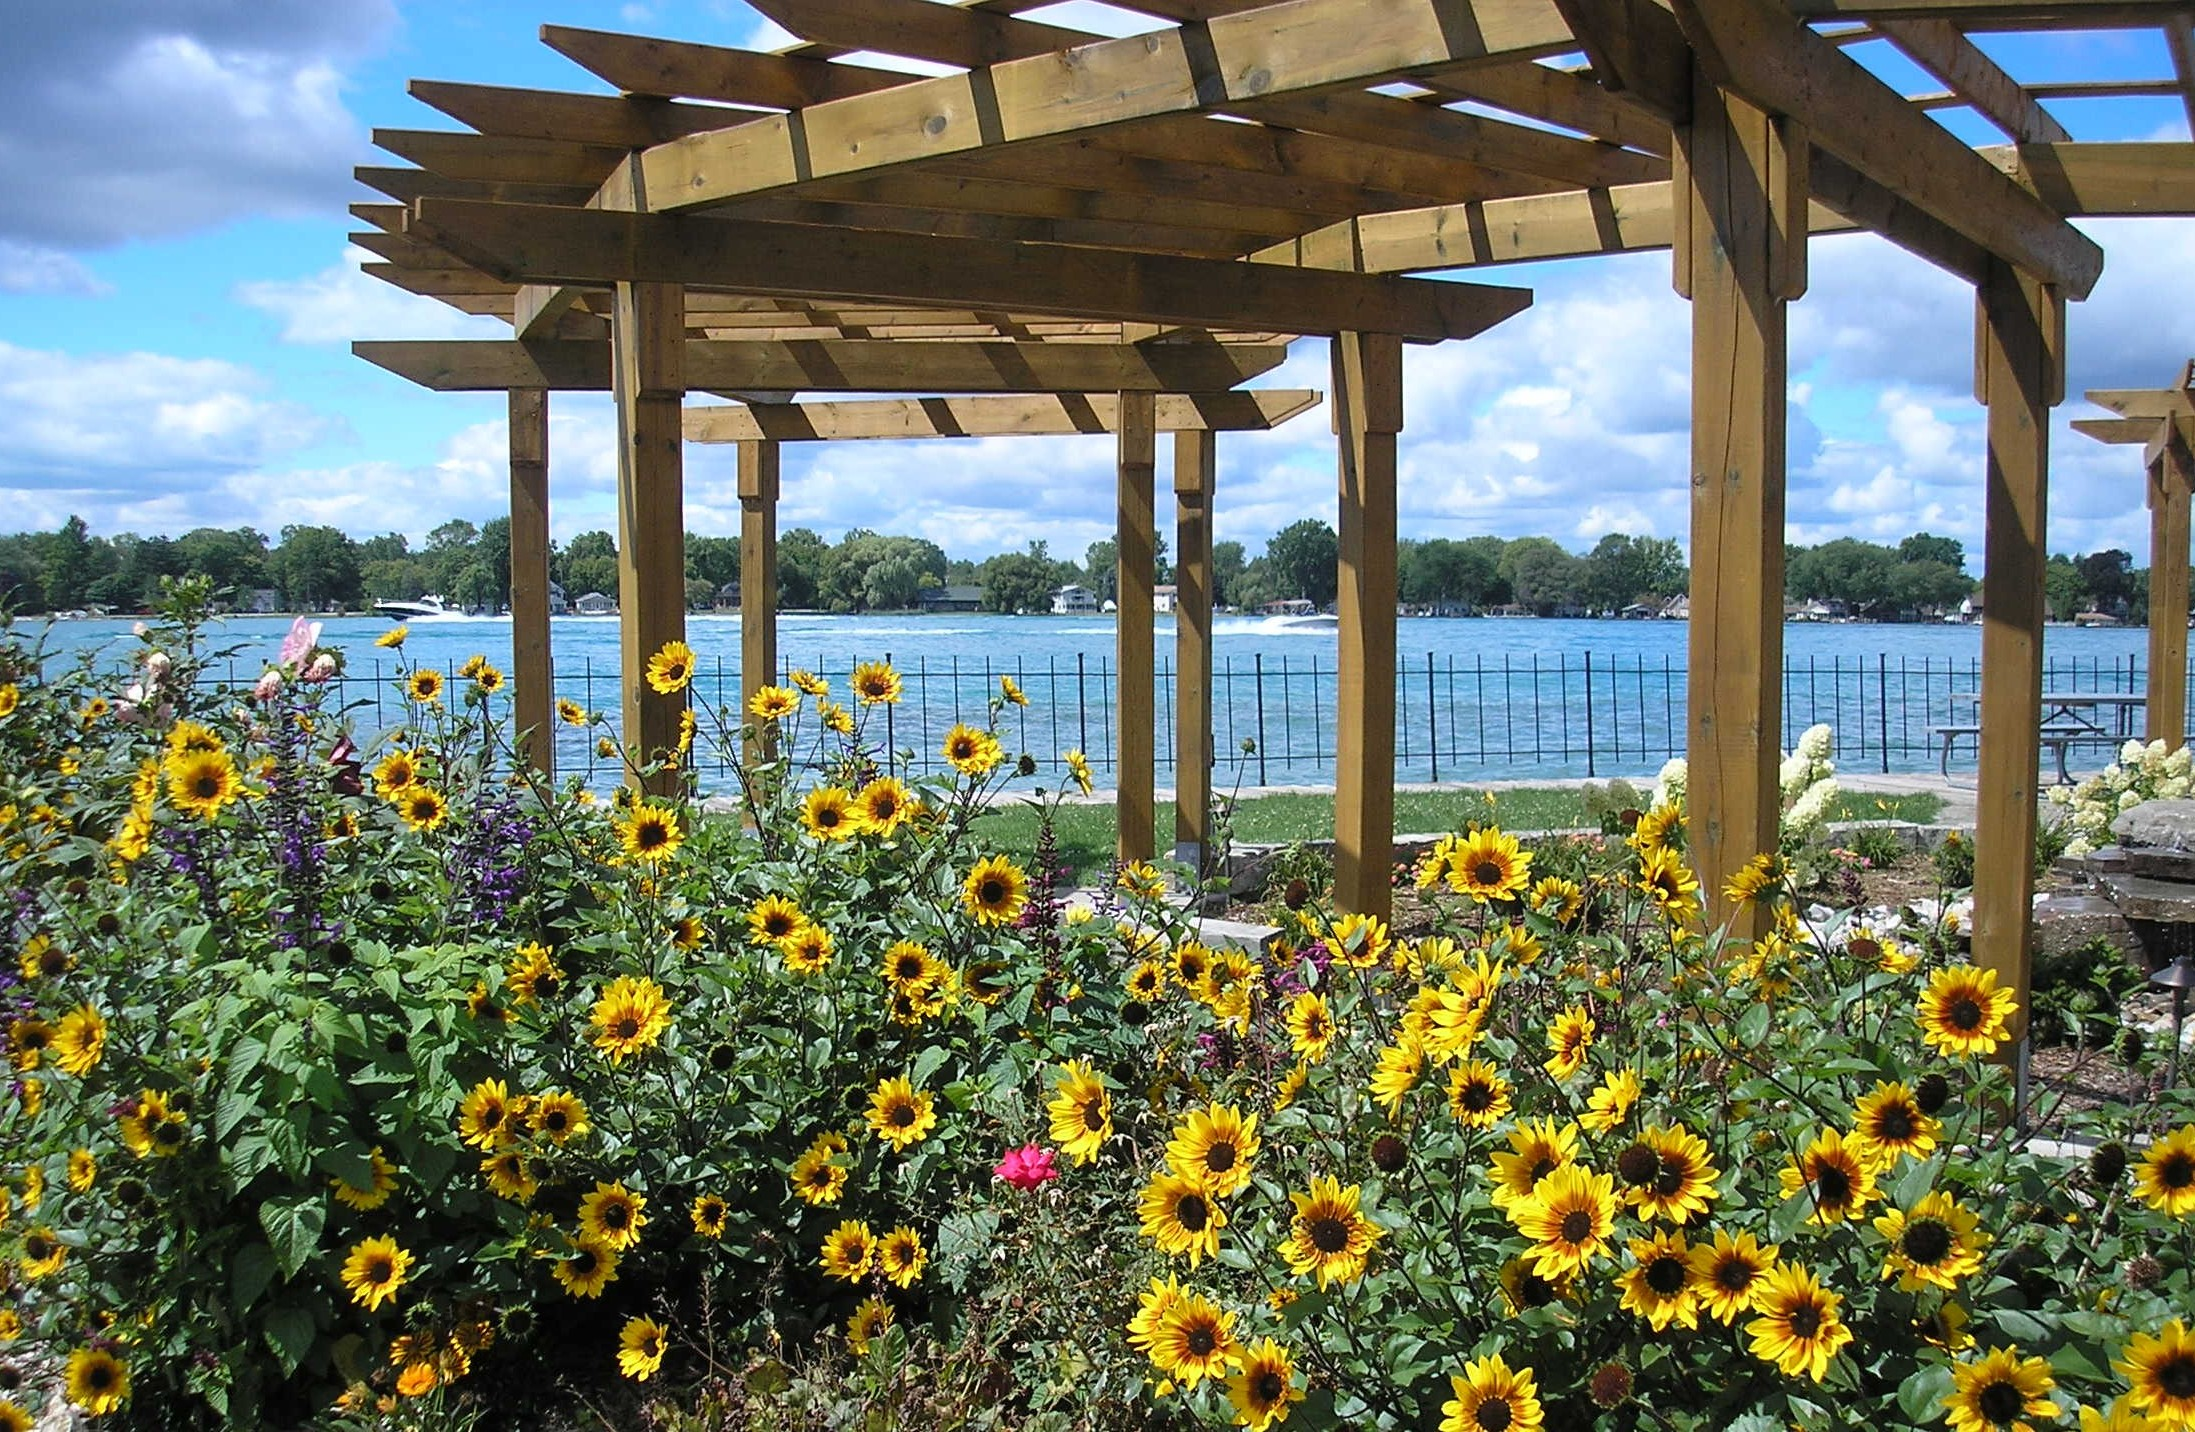 Downriver park - sunflowers